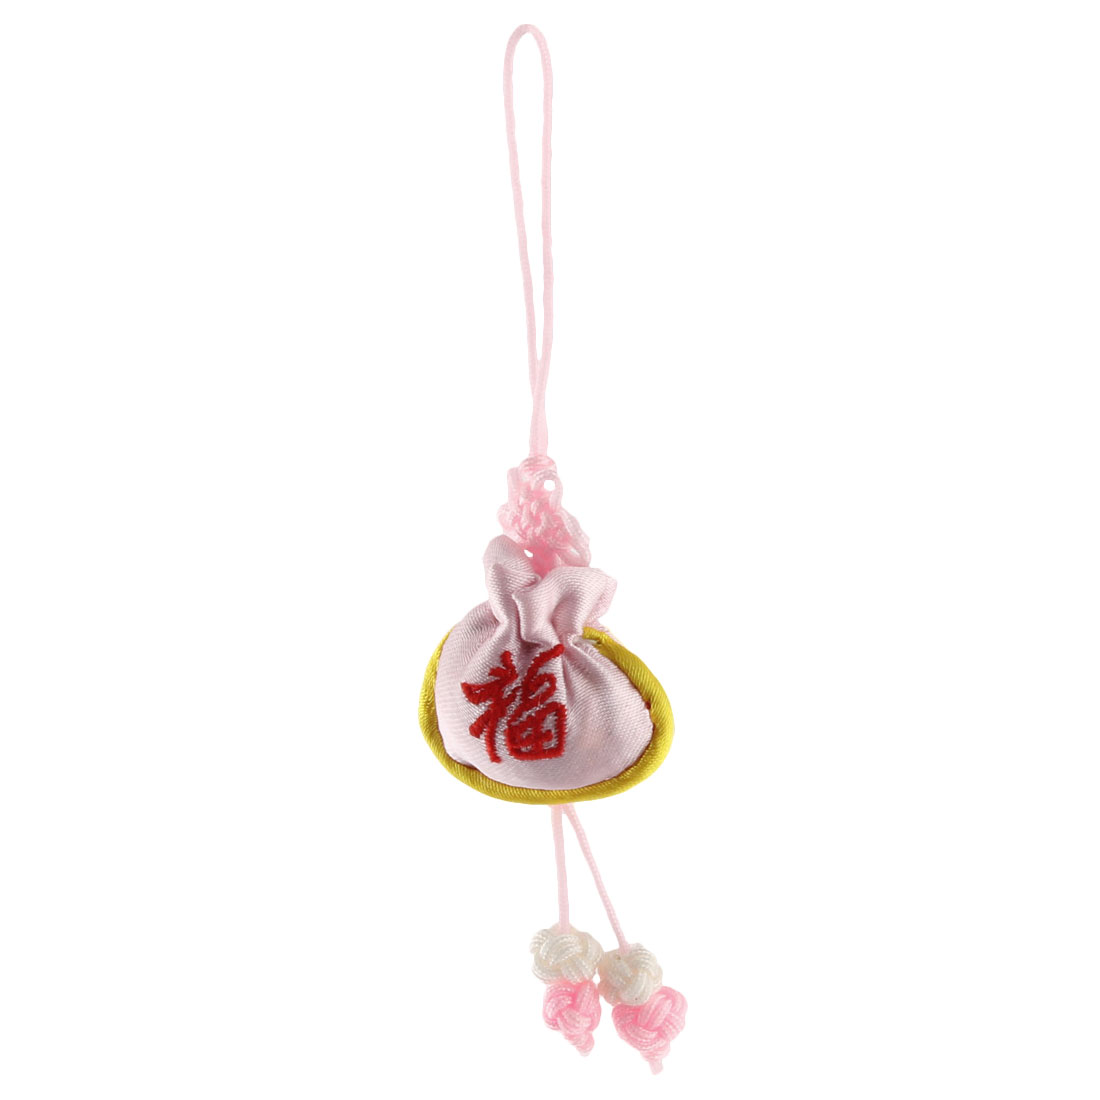 Household Chinese Mini Embroidery Luck Sachet Pendant Knot Wall Hanging Decor Pink